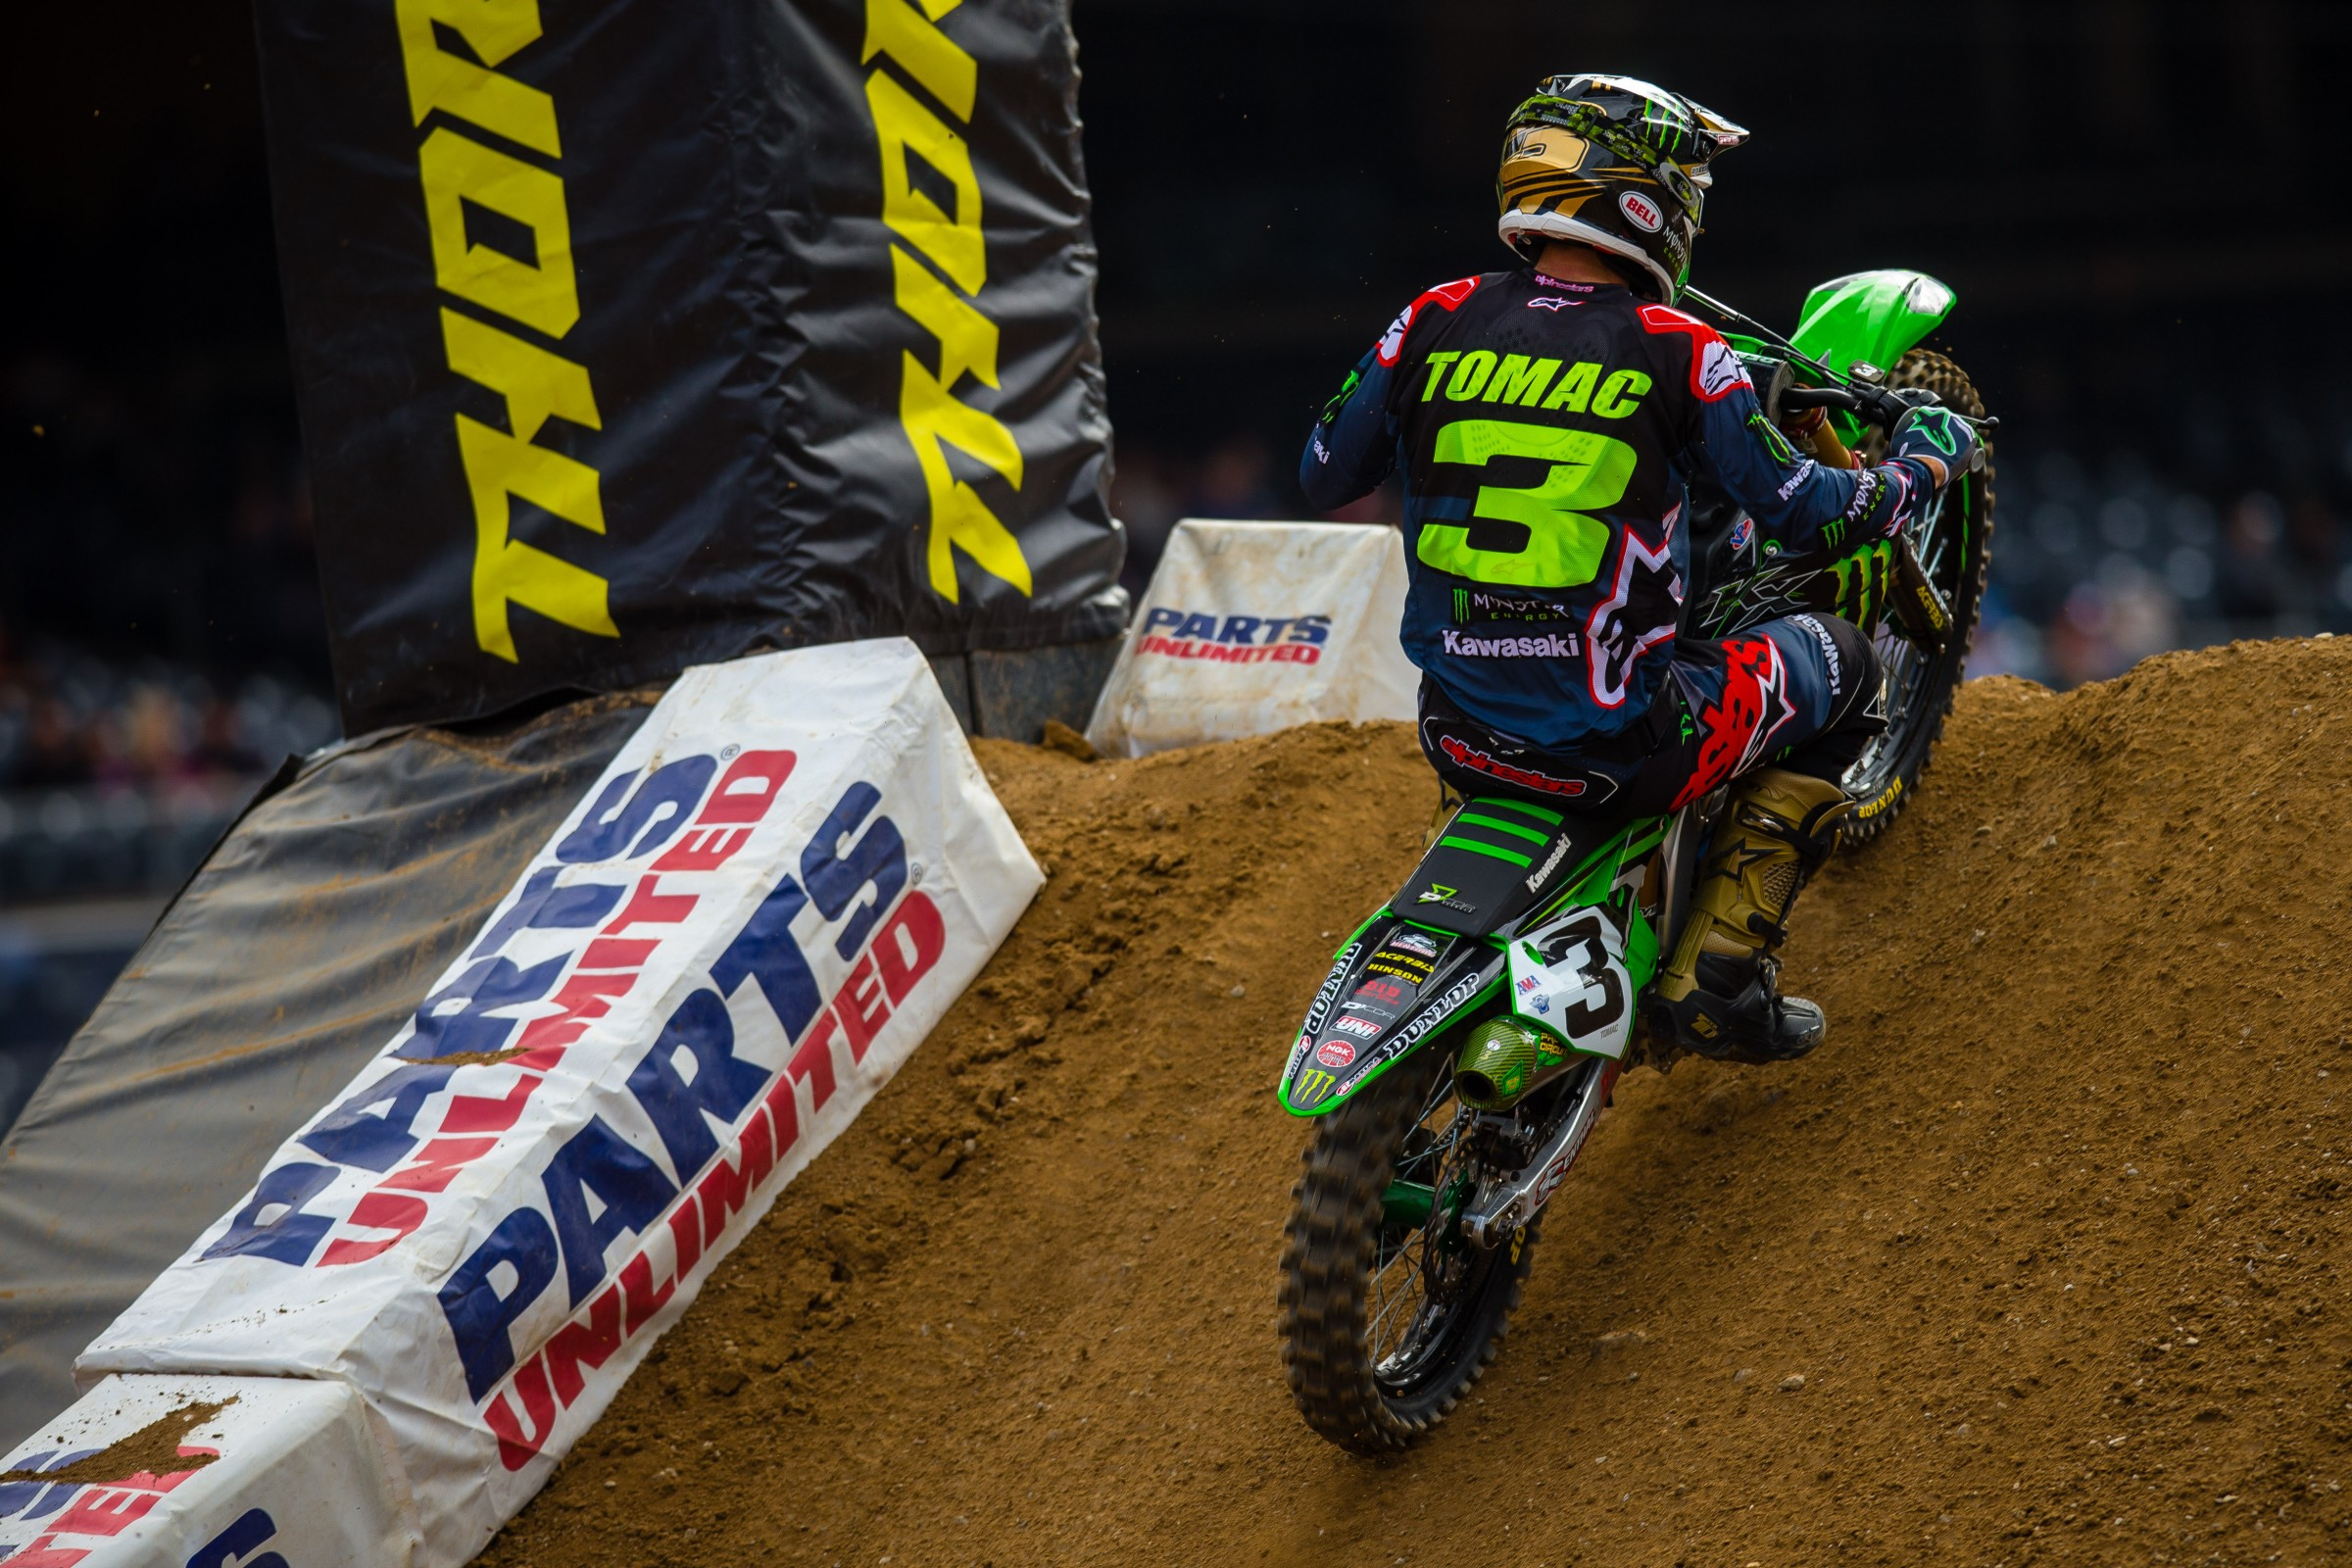 Tomac is now 77 points behind leader Anderson in overall standings.